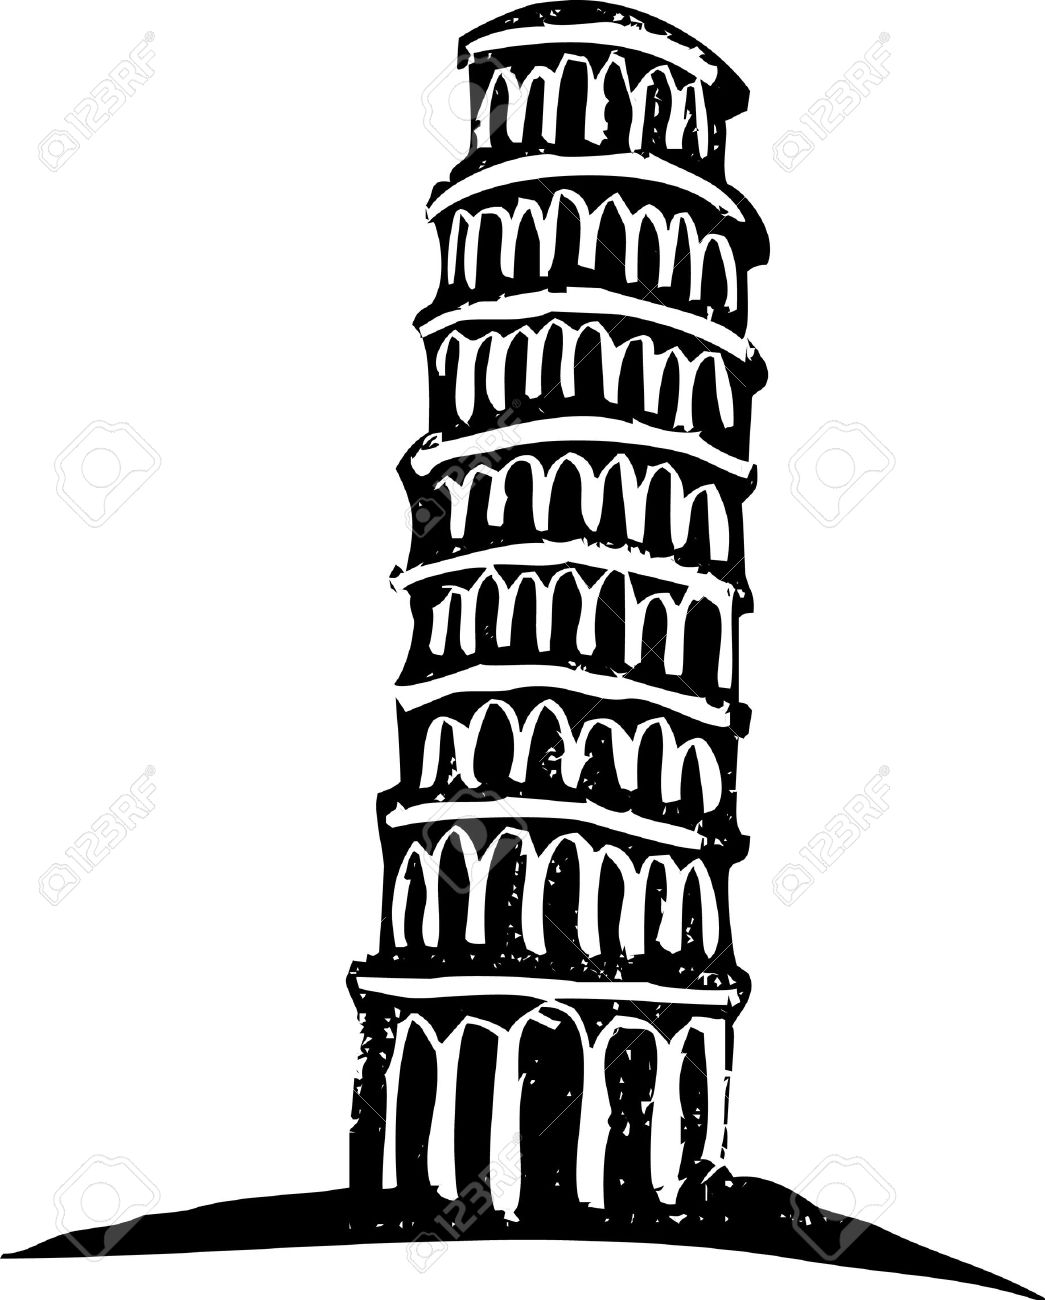 Black and White woodcut style illustration of the leaning tower of Pisa Italy. - 5666389